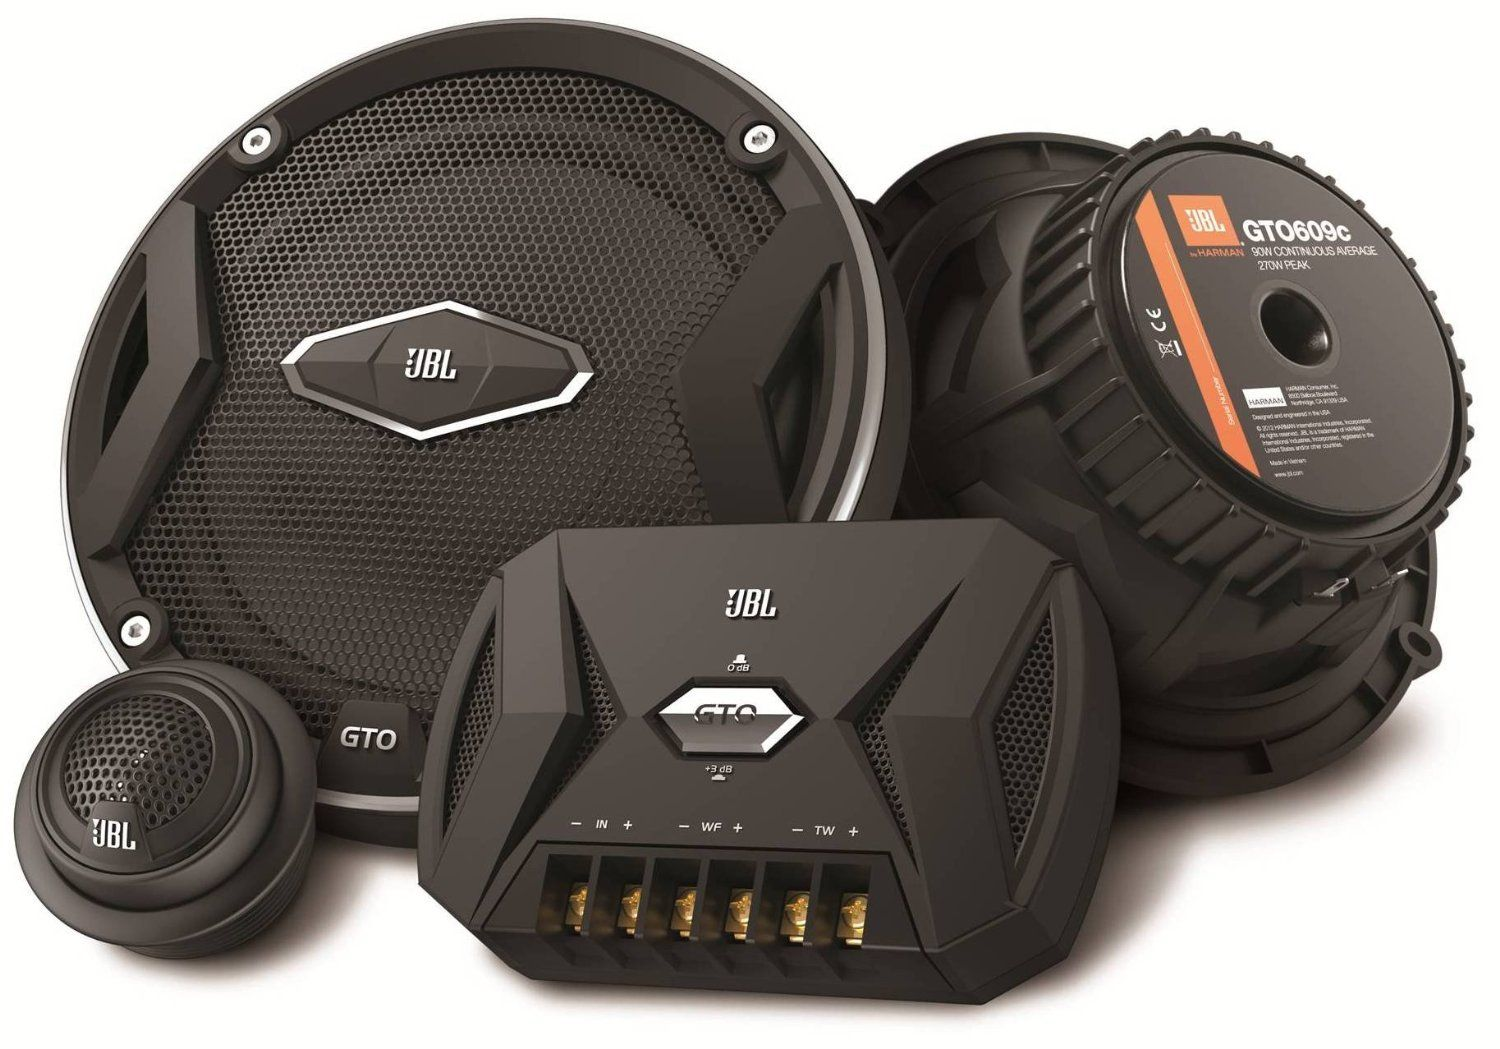 Robot Check Component Speakers Car Speakers Car Speakers System